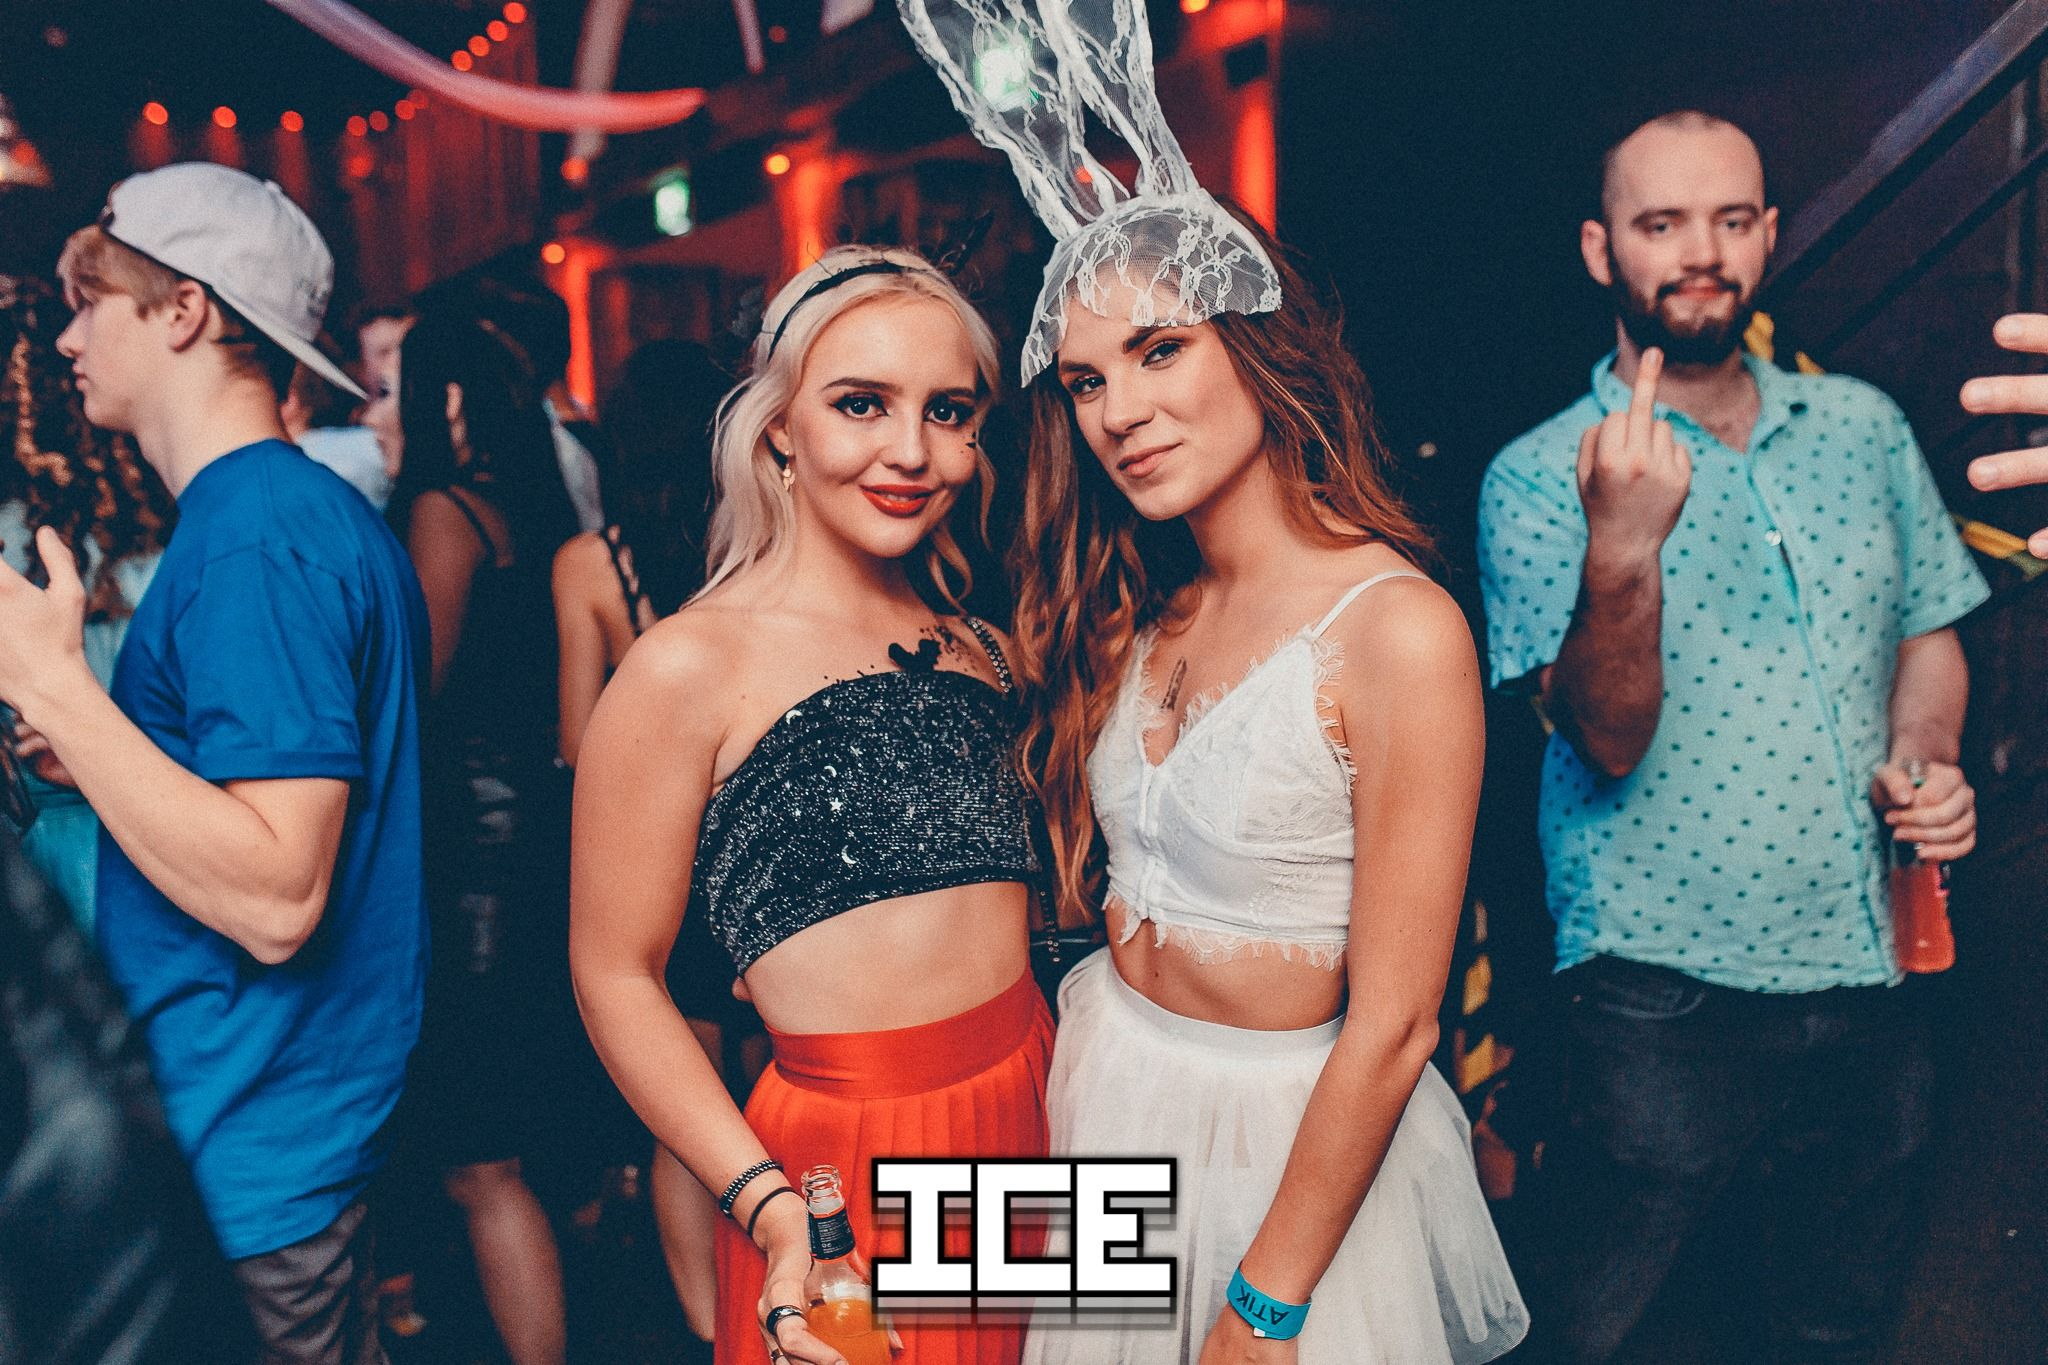 Image may contain: Night Club, Club, Hat, Apparel, Clothing, Person, Human